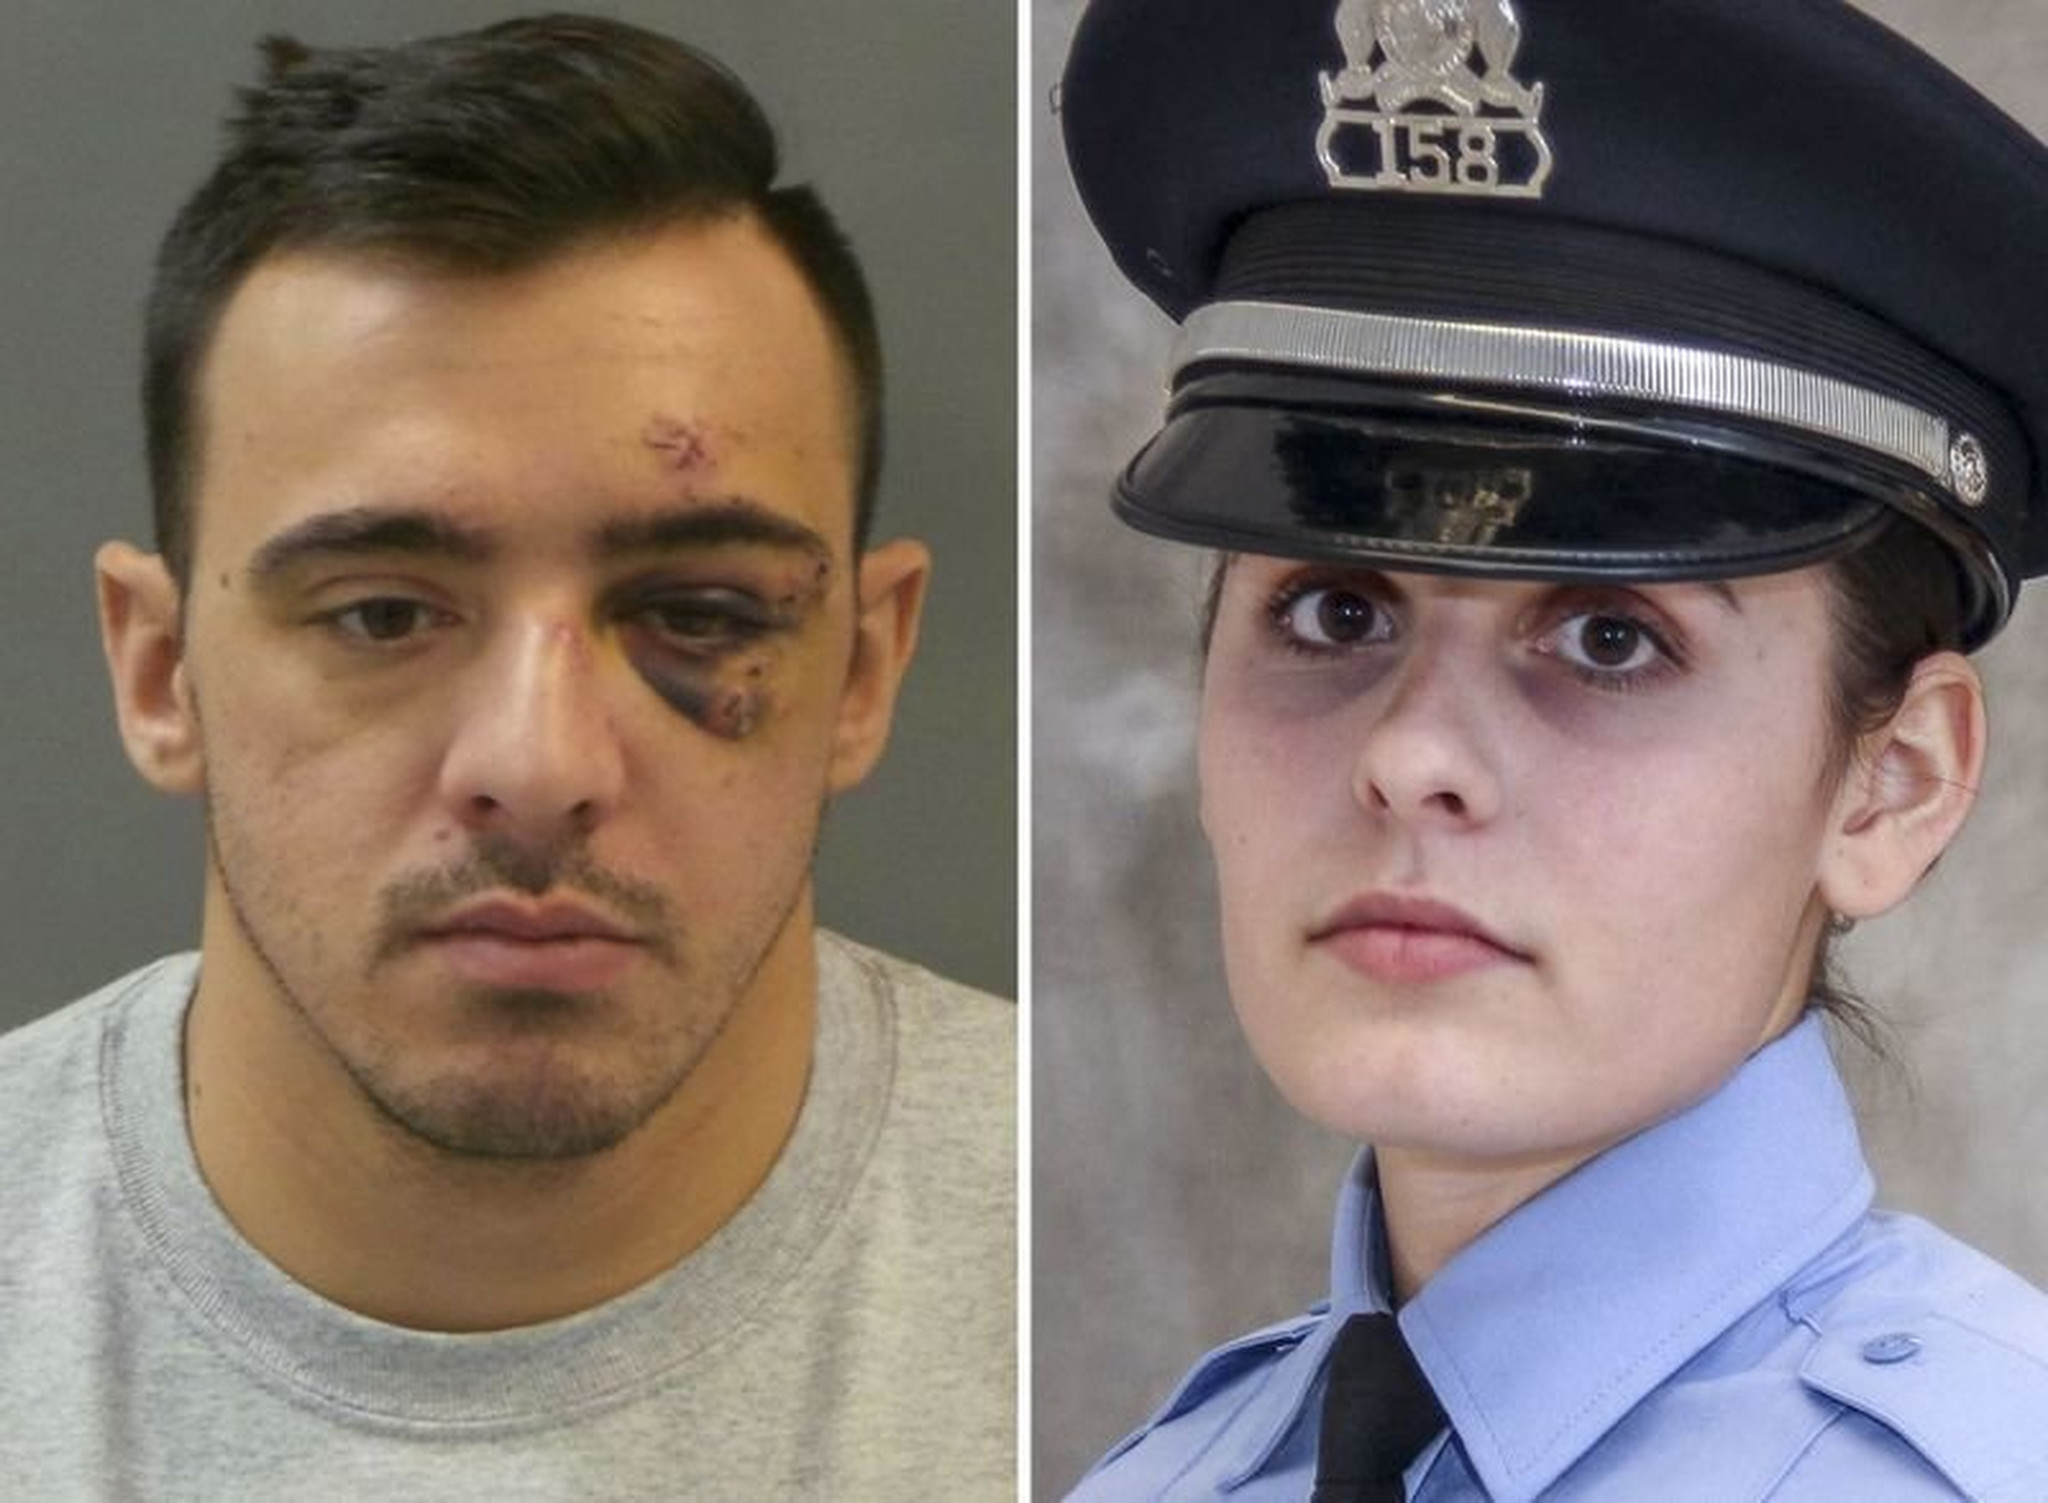 St. Louis cop who killed fellow officer in game of Russian roulette pleads guilty, gets 7 years in prison